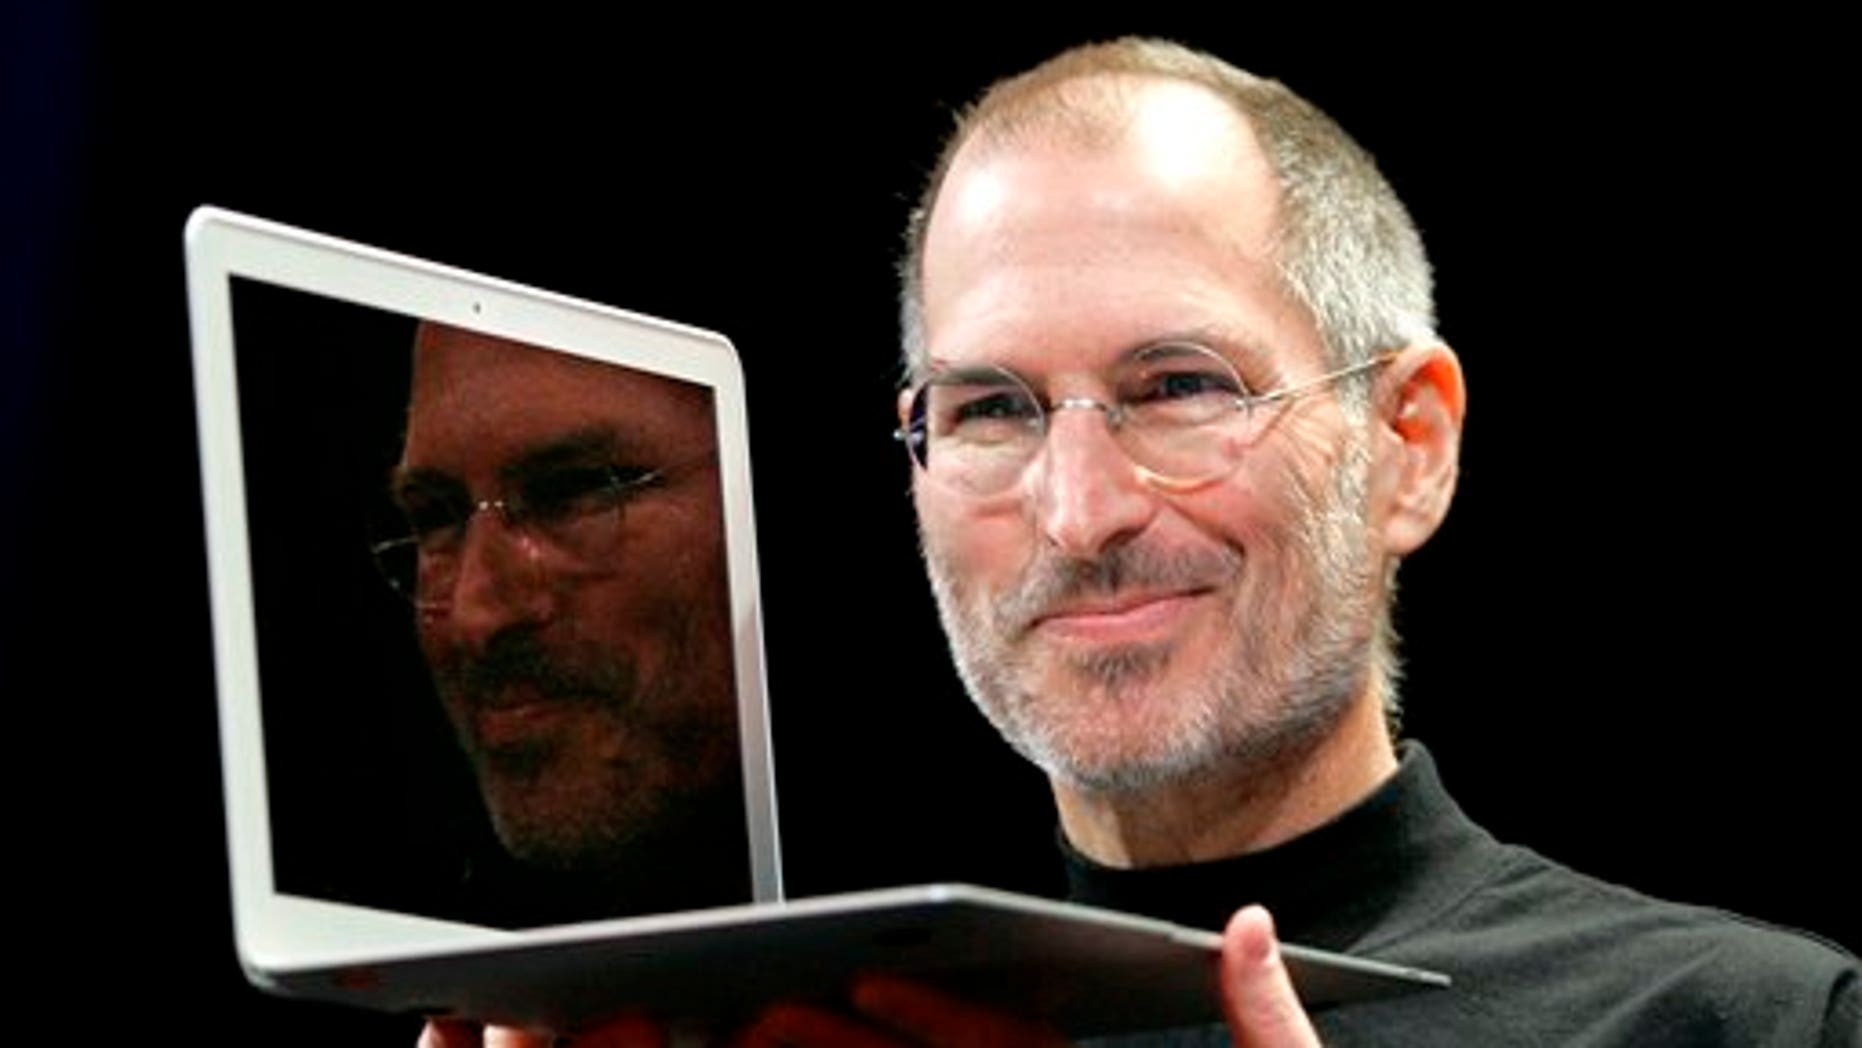 FILE - In this Jan. 15, 2008, file photo, Apple CEO Steve Jobs holds up the new MacBook Air after giving the keynote address at the Apple MacWorld Conference in San Francisco. Apple on Wednesday, Oct. 5, 2011 said Jobs has died. He was 56. (AP Photo/Jeff Chiu, File)